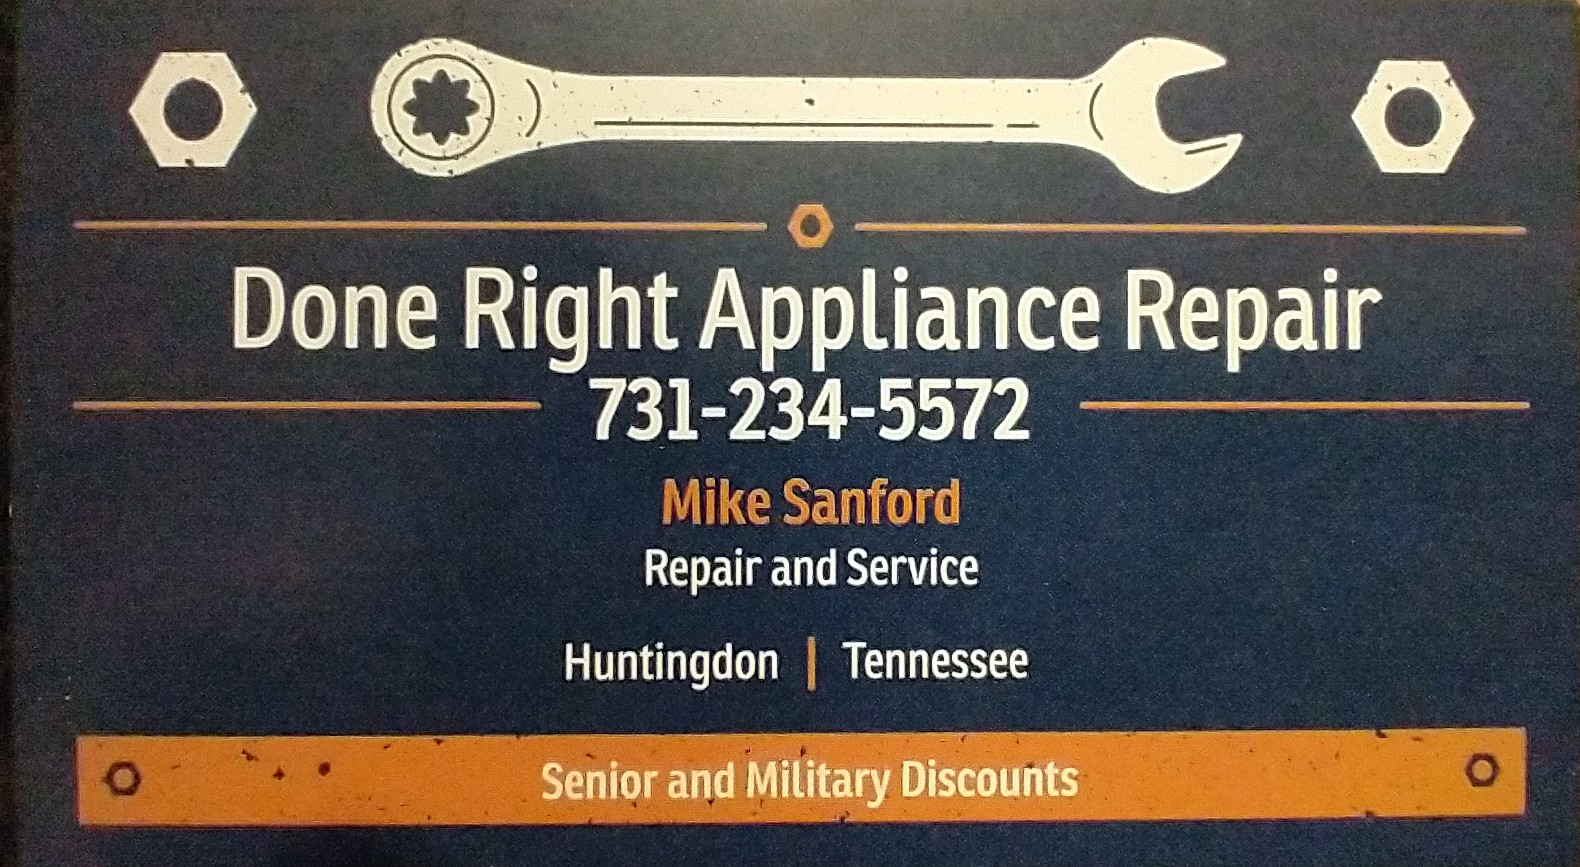 Done Right Appliance Repair and Service